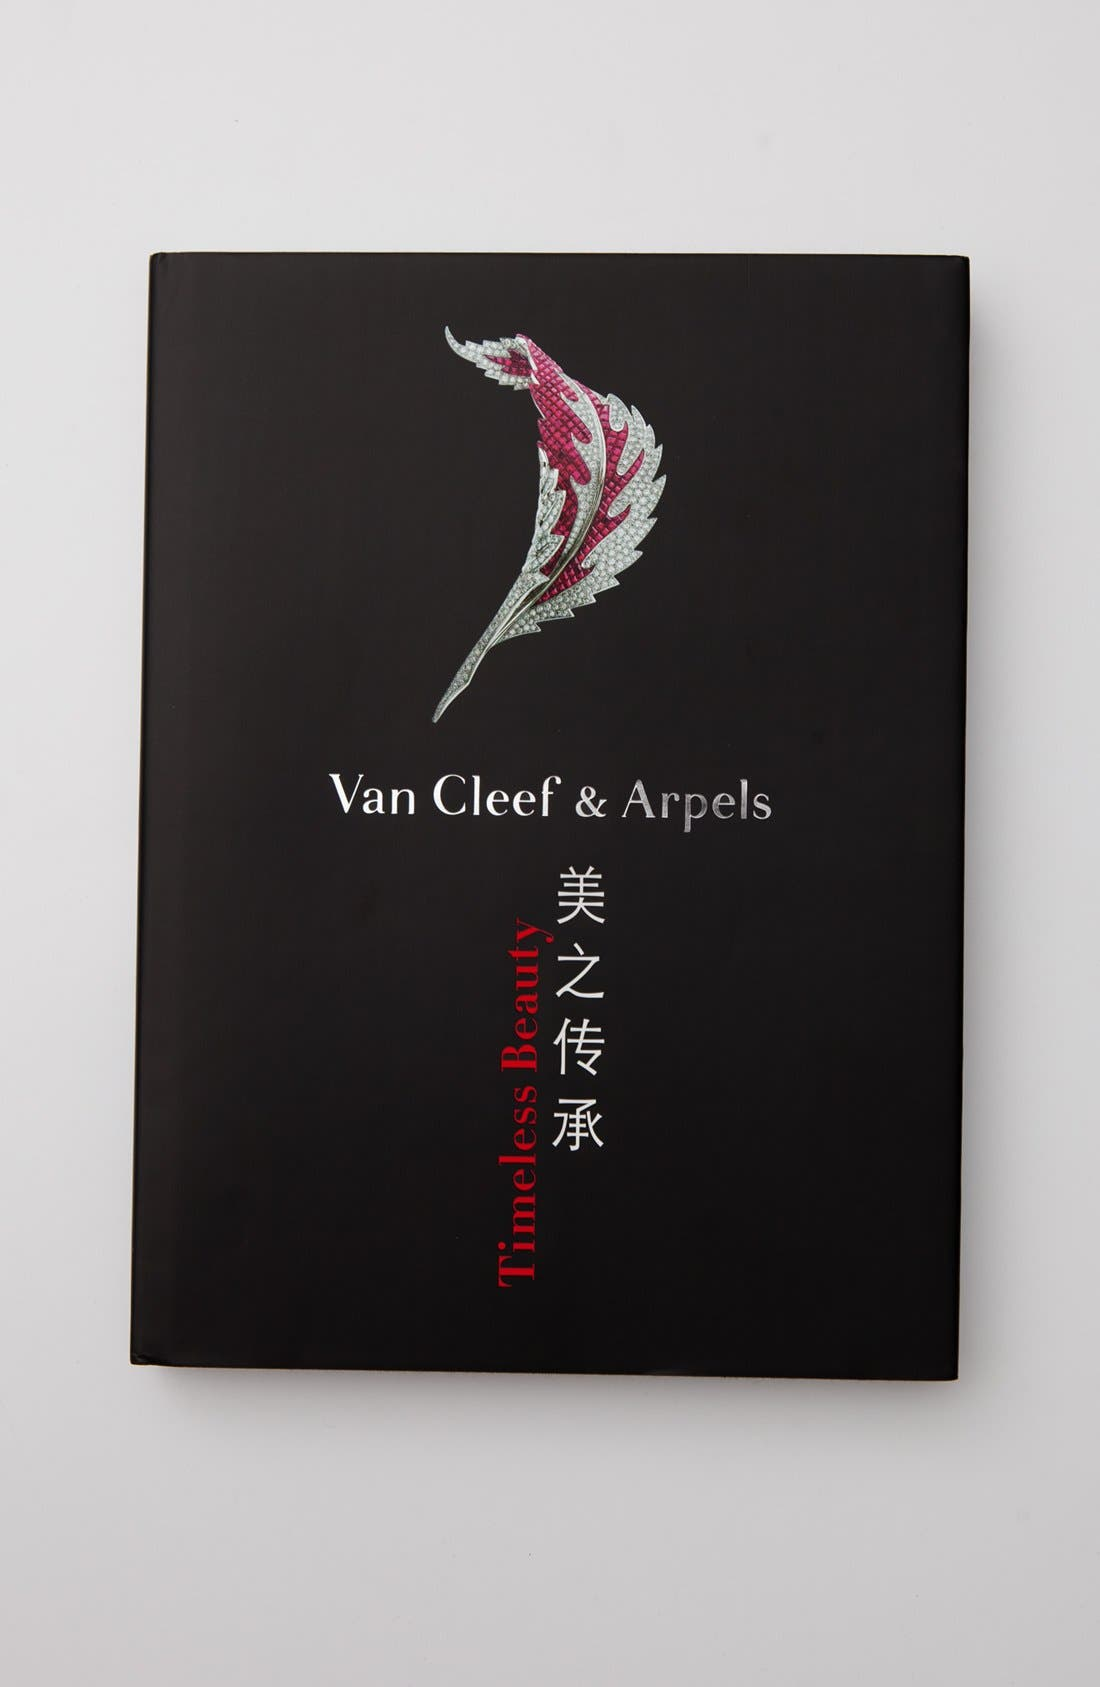 Main Image - 'Van Cleef & Arpels: Timeless Beauty'